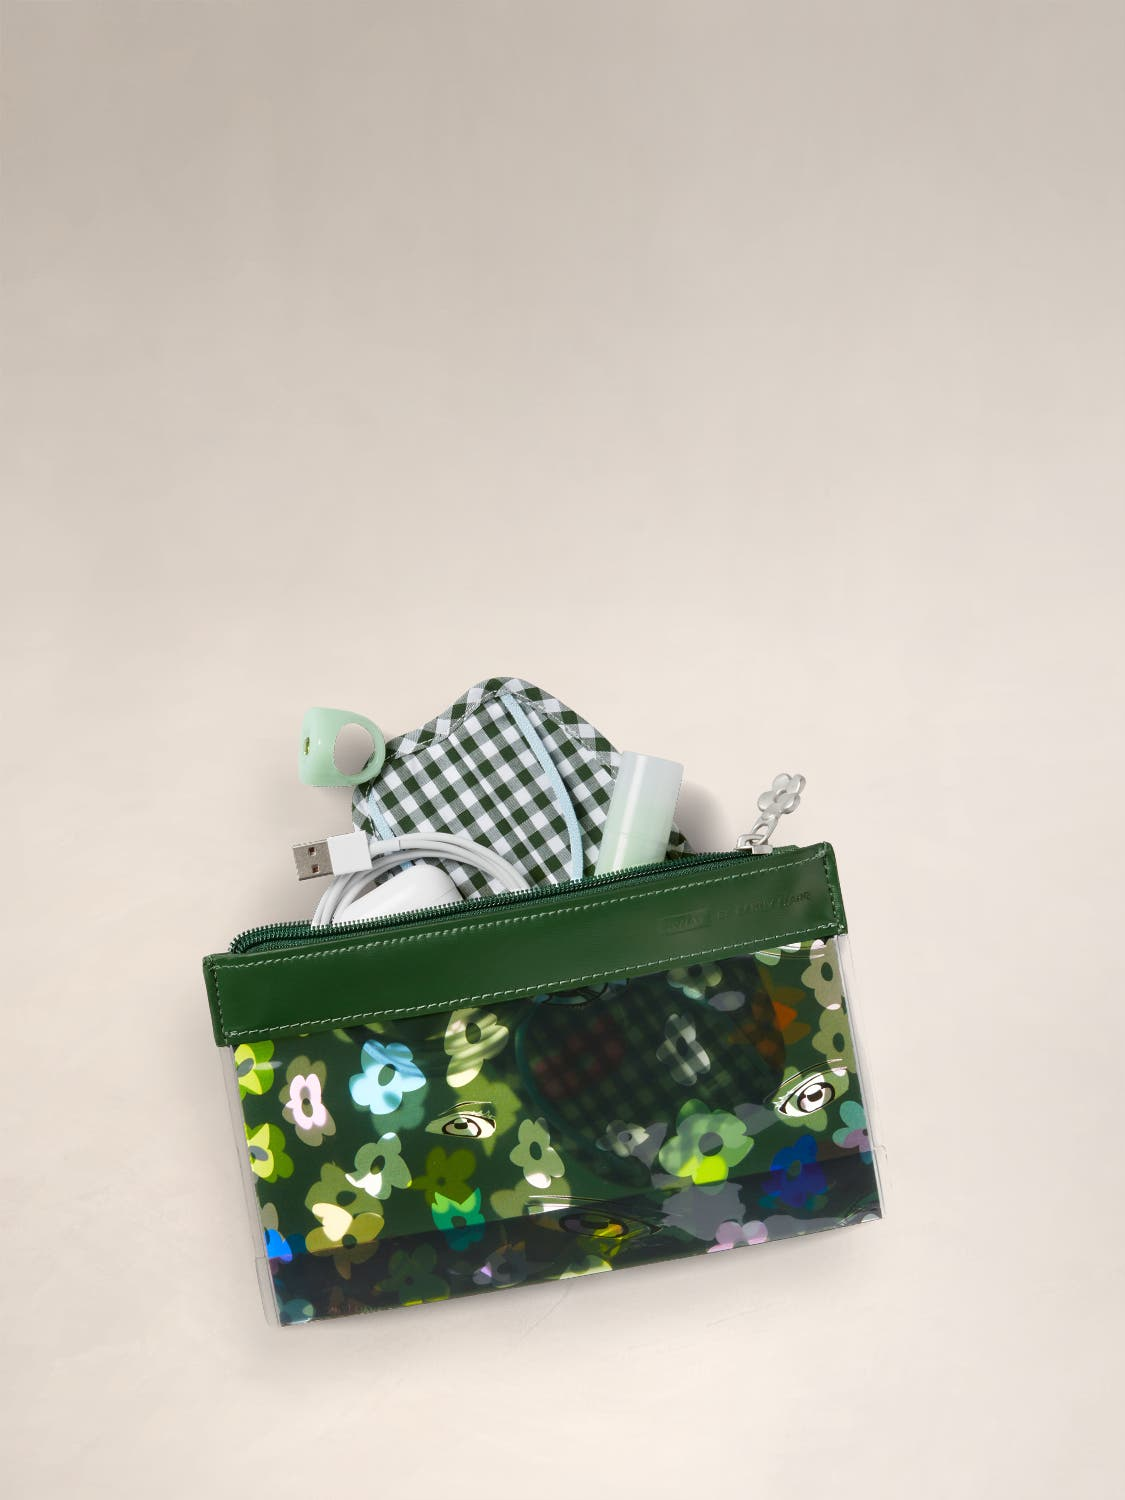 The Travel Pouch Set by Sandy Liang in green floral pattern, with miscellaneous items packed in